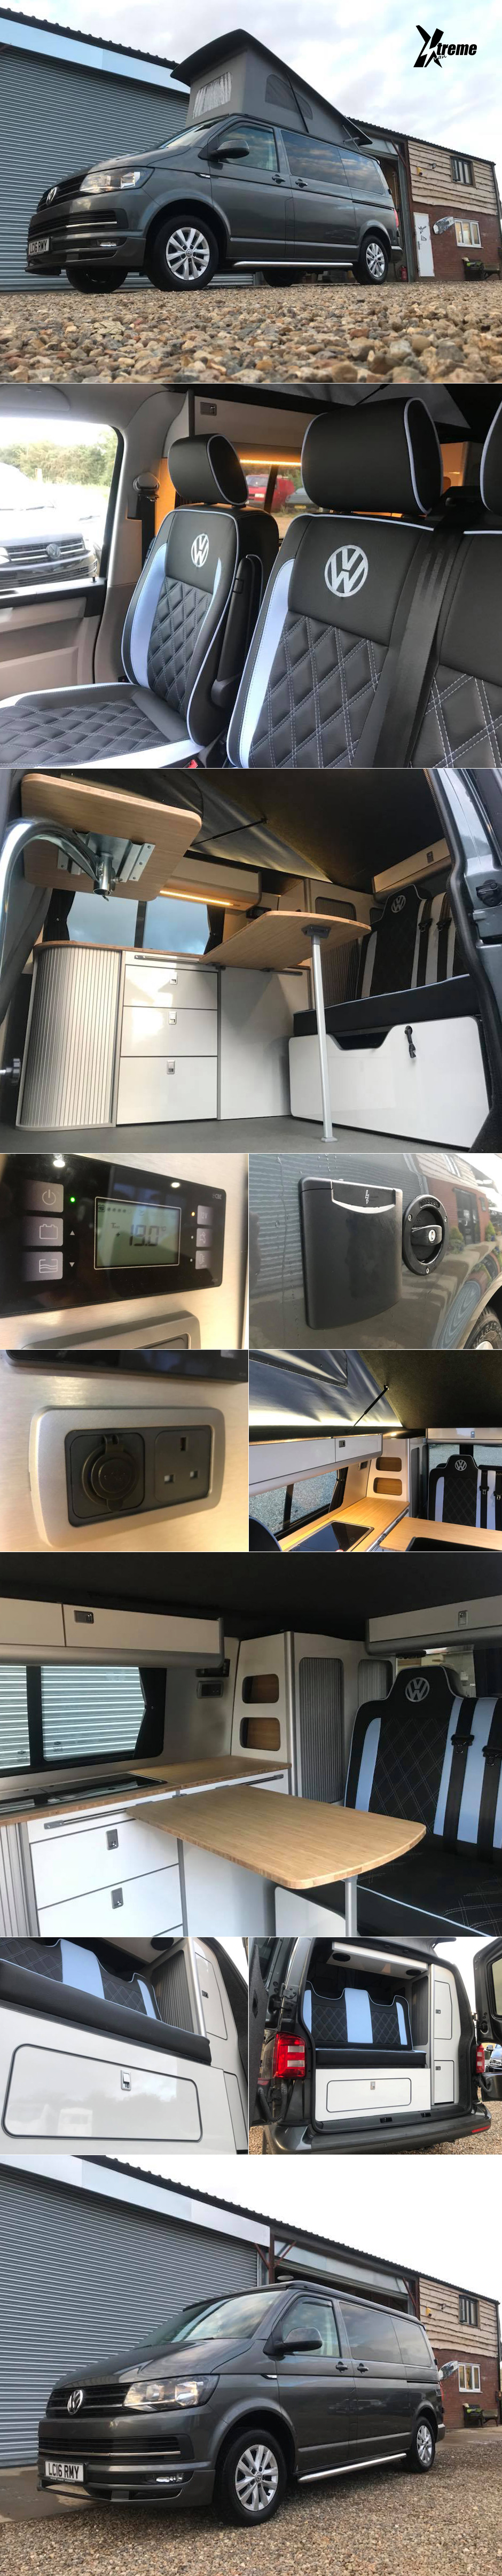 xtremevan skyline roof camper conversion